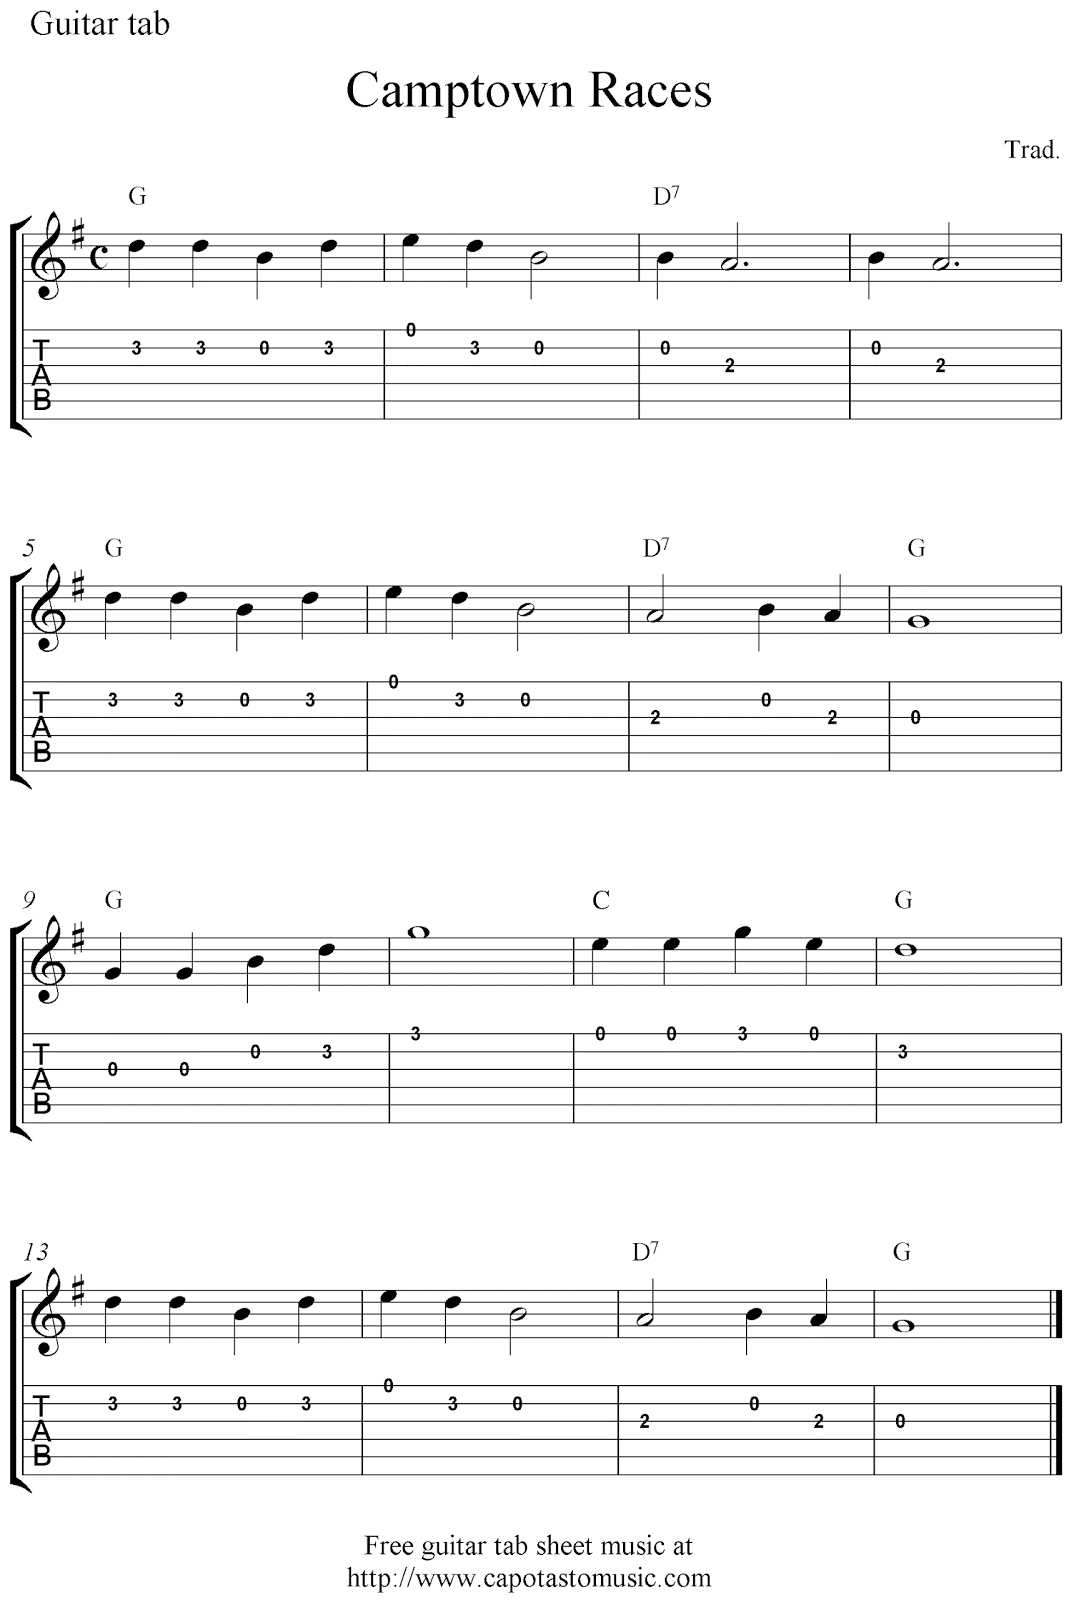 graphic relating to Printable Guitar Tab titled Guitar tabs and absolutely free sheet new music, Camptown Races